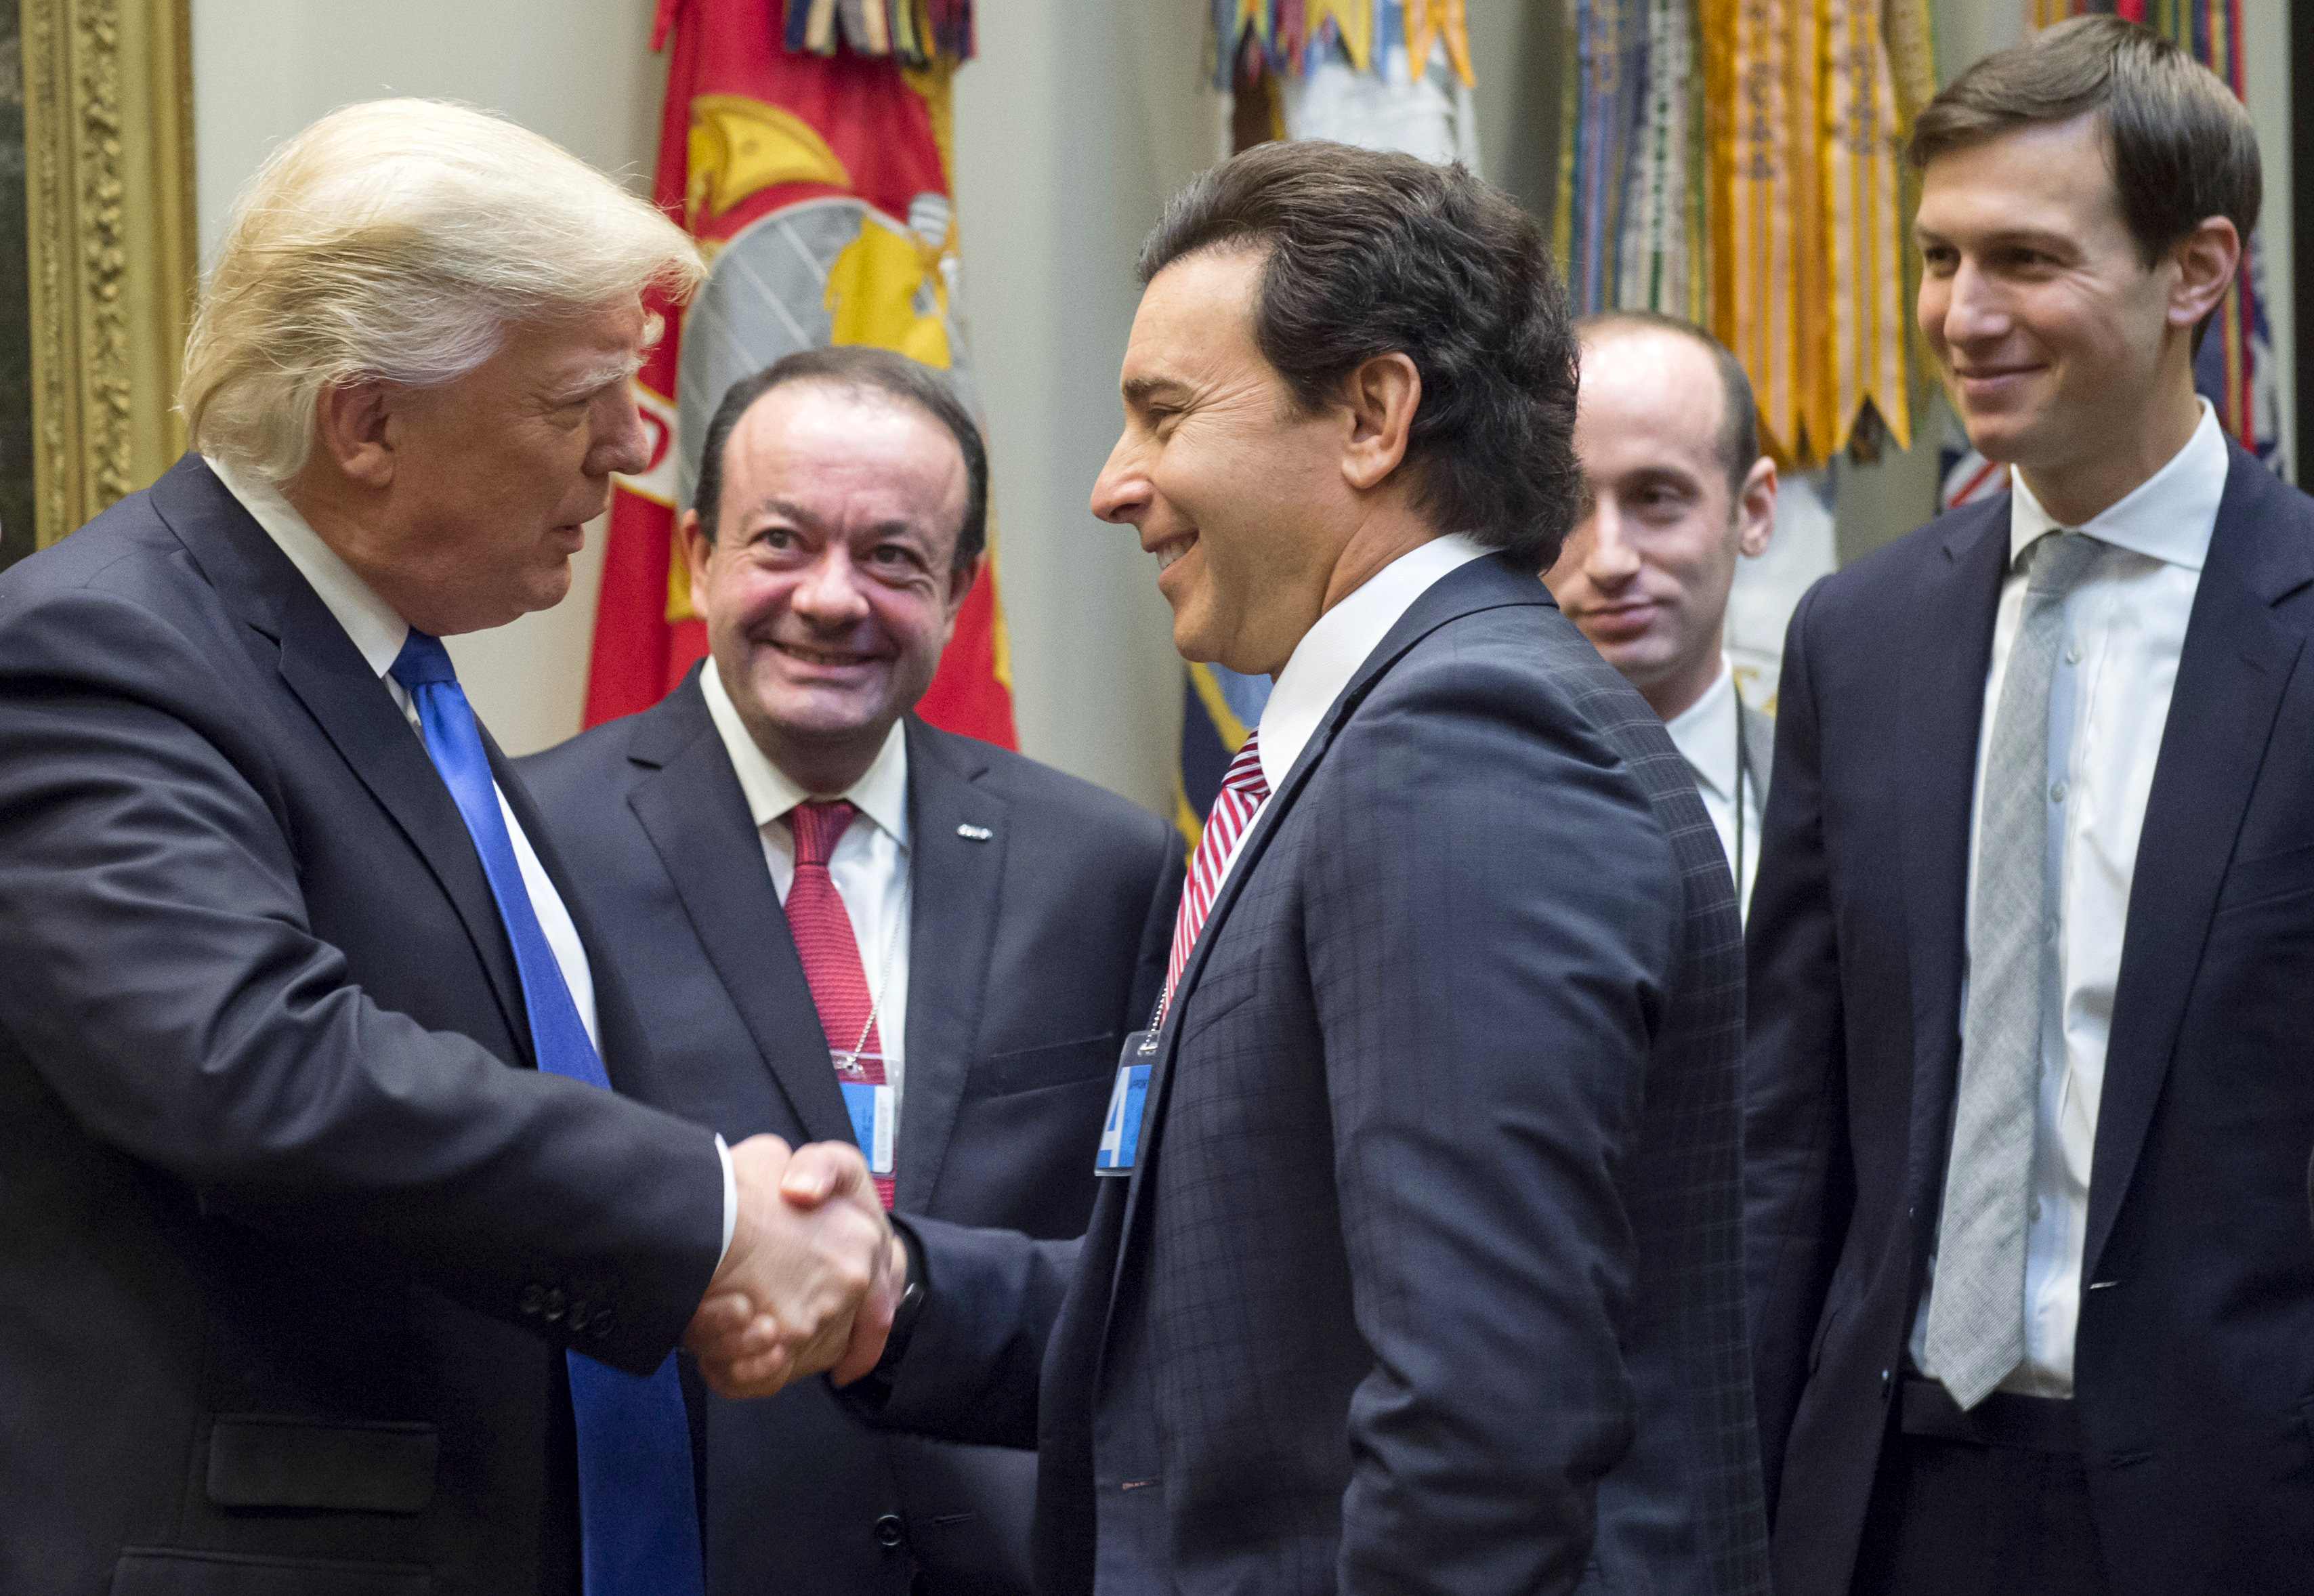 US President Donald Trump greets Ford President and CEO Mark Fields (C) prior to a meeting with automobile industry leaders in the Roosevelt Room of the White House in Washington, DC, January 24, 2017. (Photo: SAUL LOEB/AFP/Getty Images)